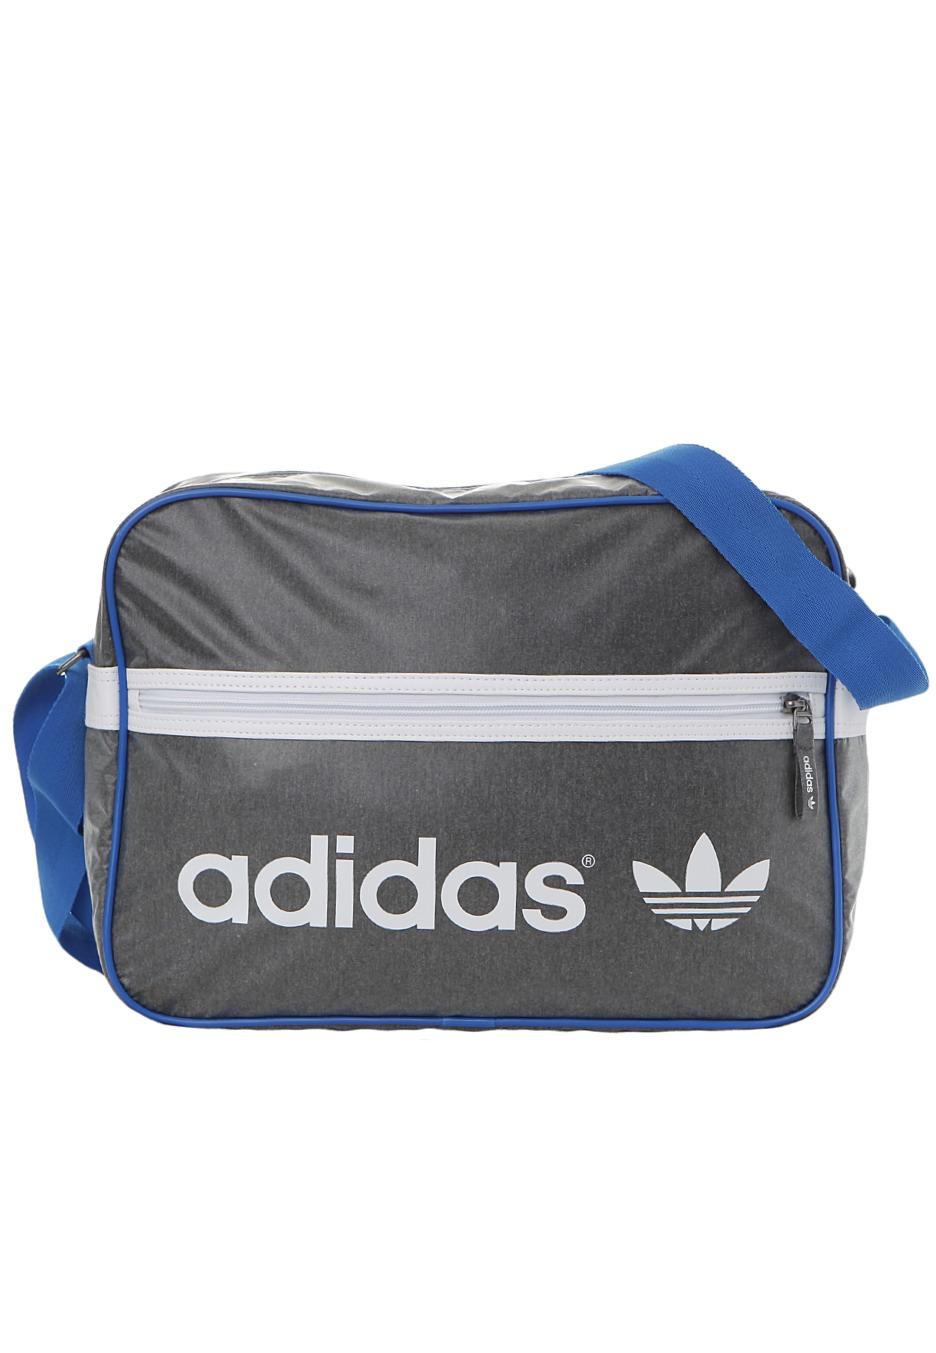 1cf17b073dcf Adidas - AC Airline Dark Grey Heather Bluebird - Bag - Streetwear Shop -  Impericon.com US